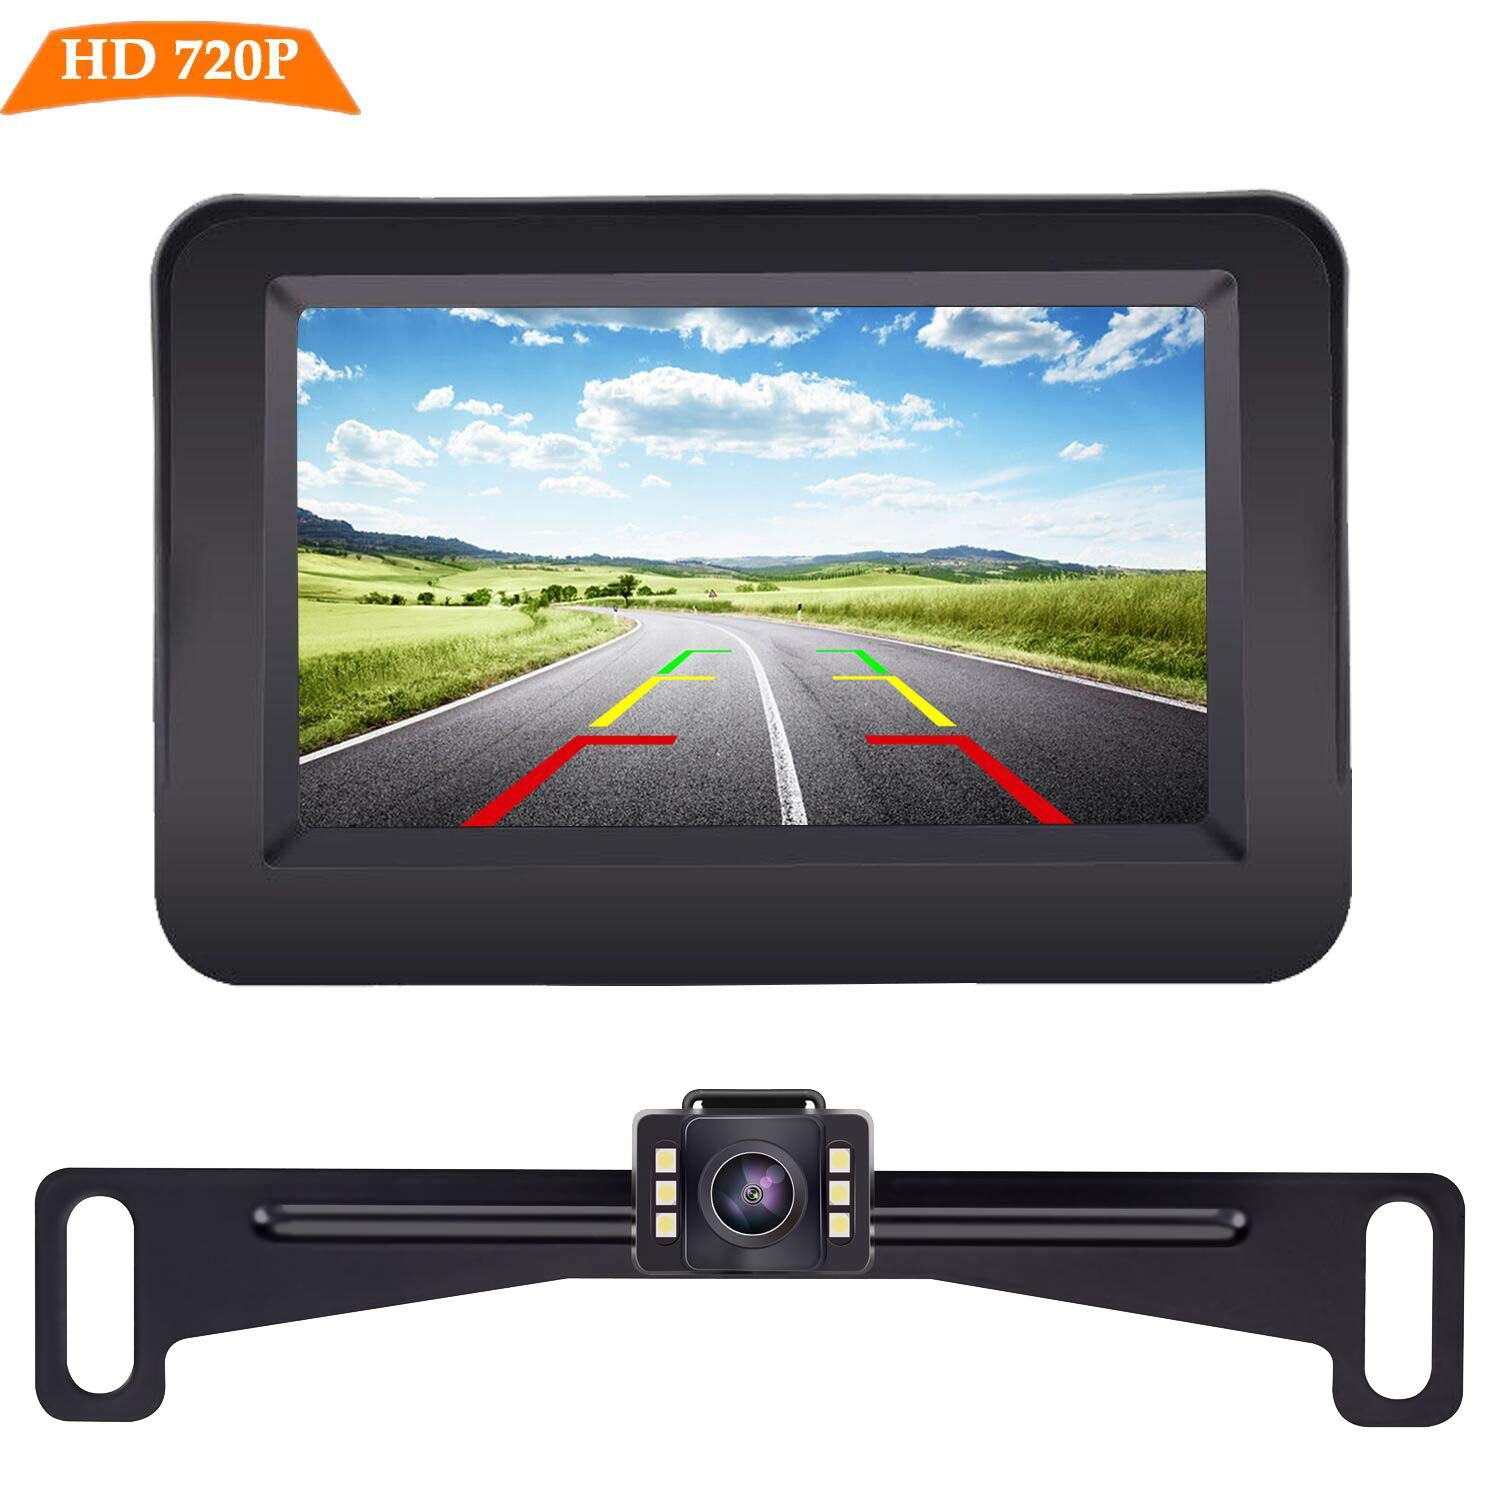 LeeKooLuu HD 720P Backup Camera and Monitor Kit OEM,Hitch Camera for Cars,Trucks,Vans,Campers Waterproof Super Night Vision Rear//Front View Camera One Power System Reverse//Continuous Use DIY Grid Line